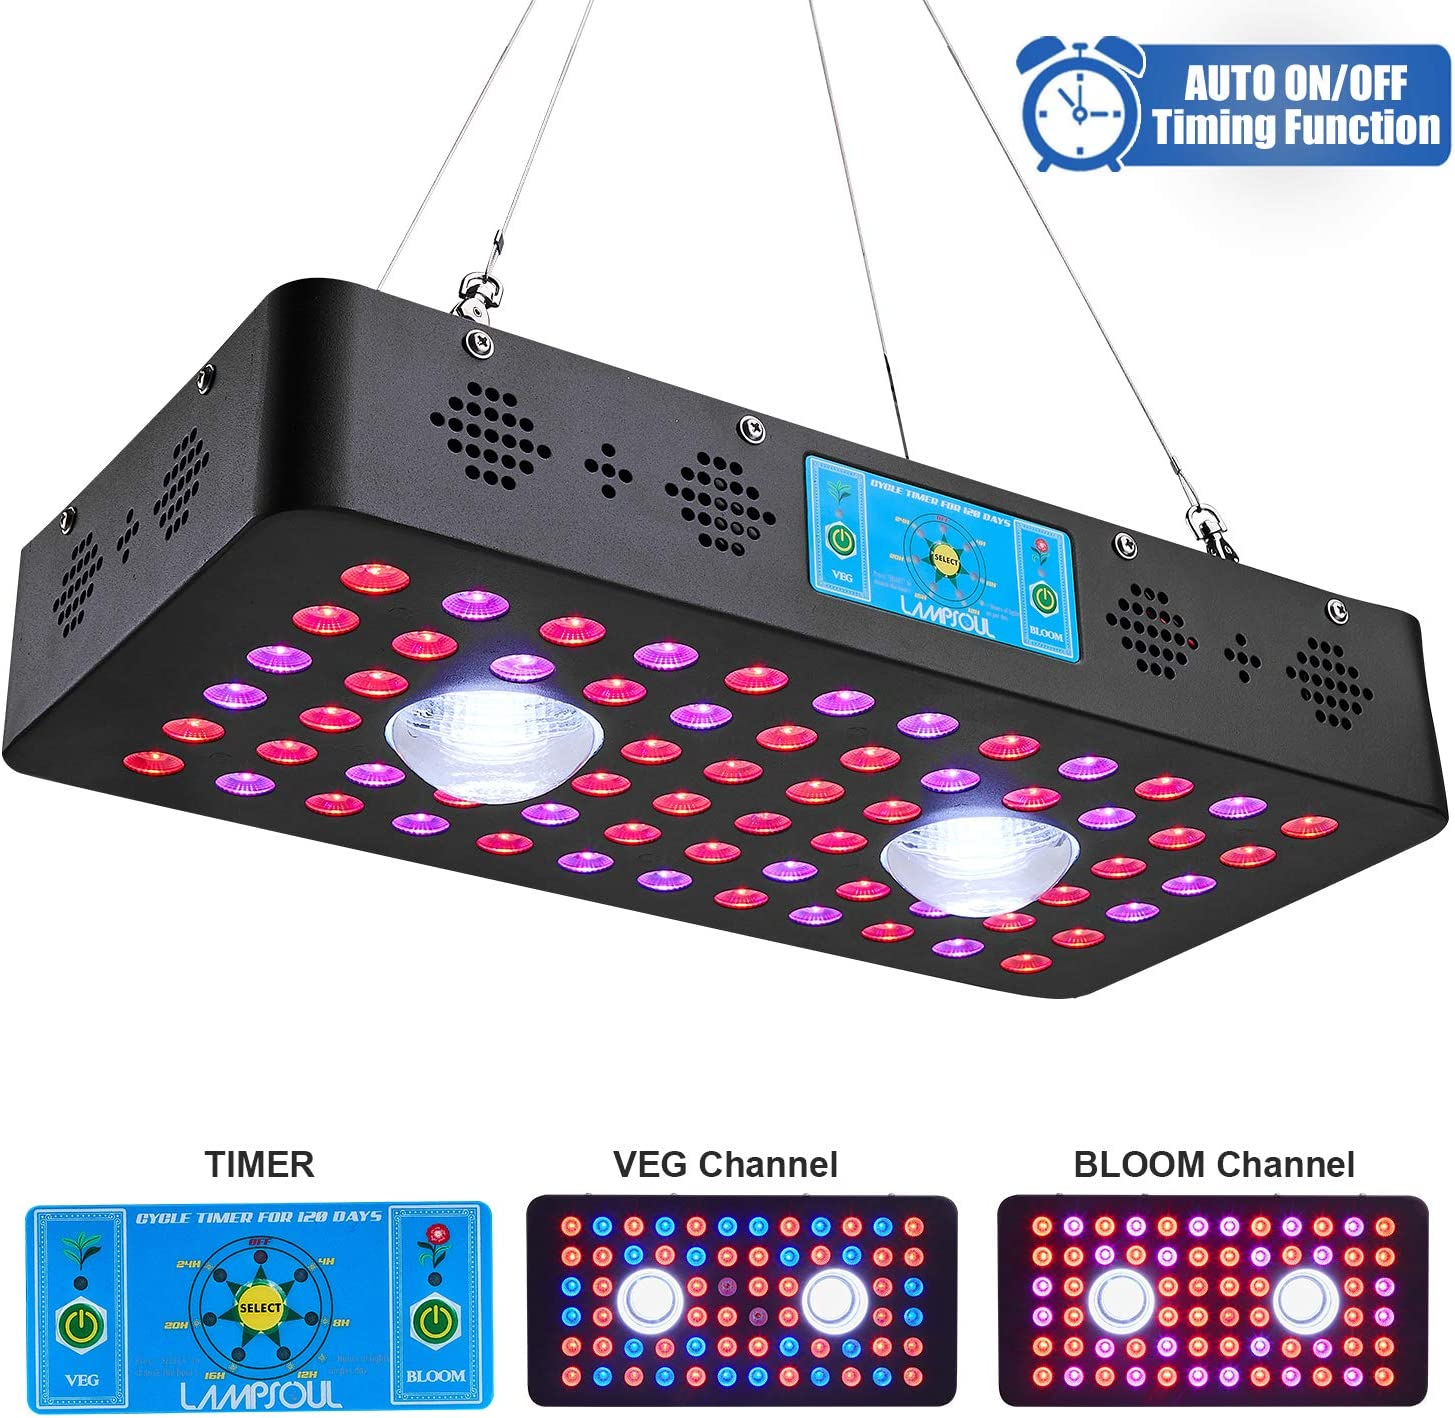 1200W COB LED Grow Light Full Spectrum LAMPSOUL LED Plant Growing Lamp with Auto On/Off Timer and Daisy Chain for Indoor Plants Veg and Flower (1200watt)